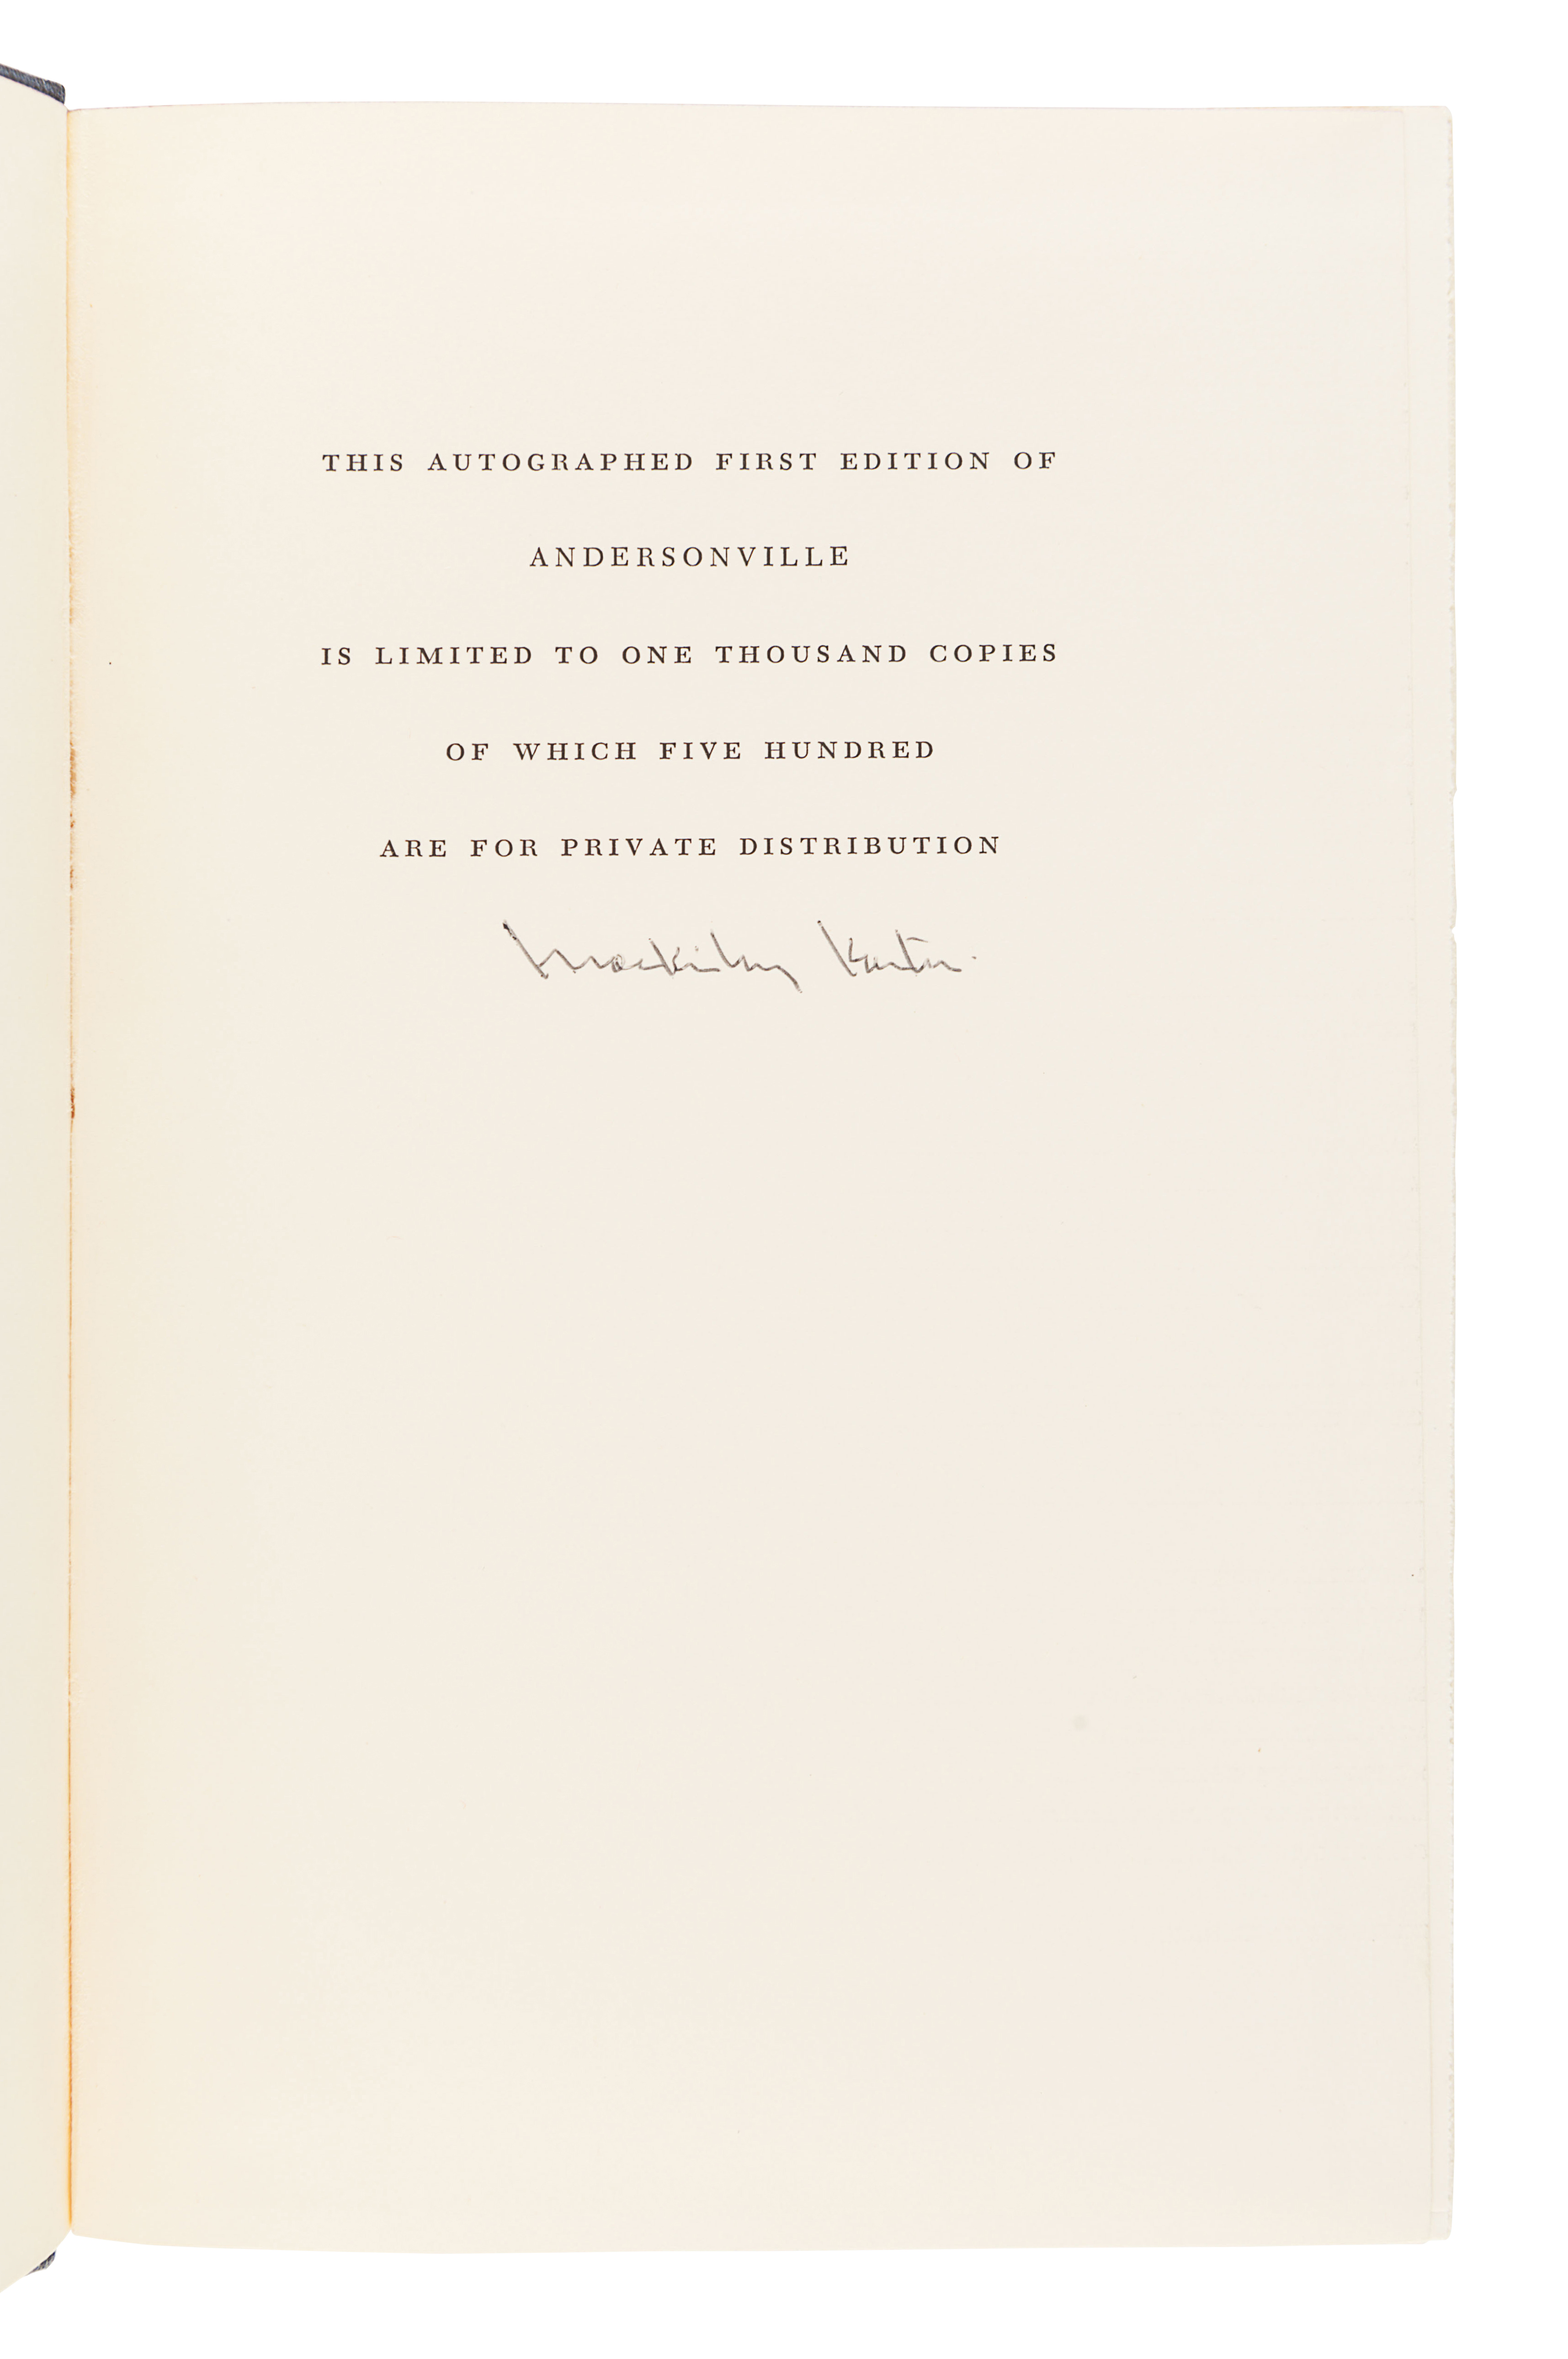 [CIVIL WAR]. KANTOR, MacKinlay (1904-1977). Andersonville. Cleveland and New York: The World Publish